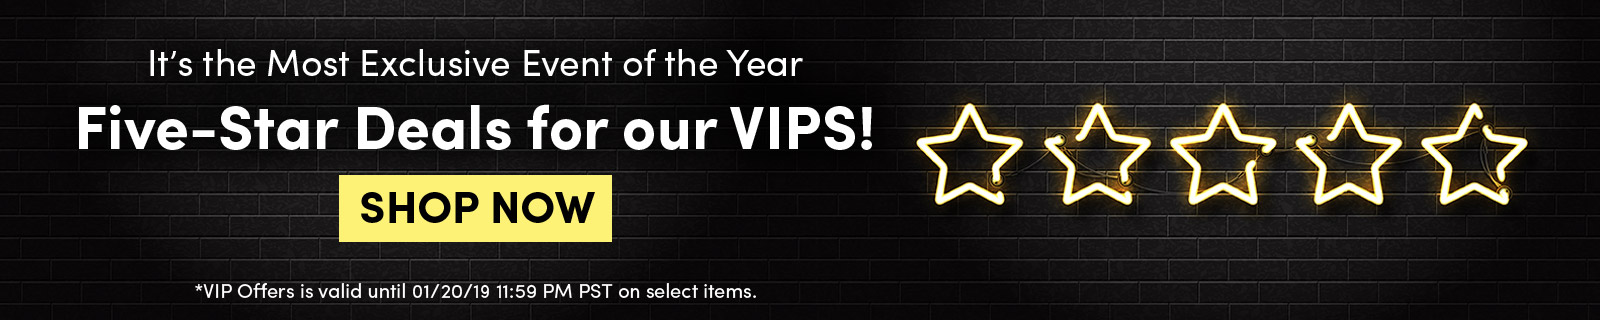 It's the Most Exclusive Event of the Year Five-Star Deals for our VIPS! SHOP NOW